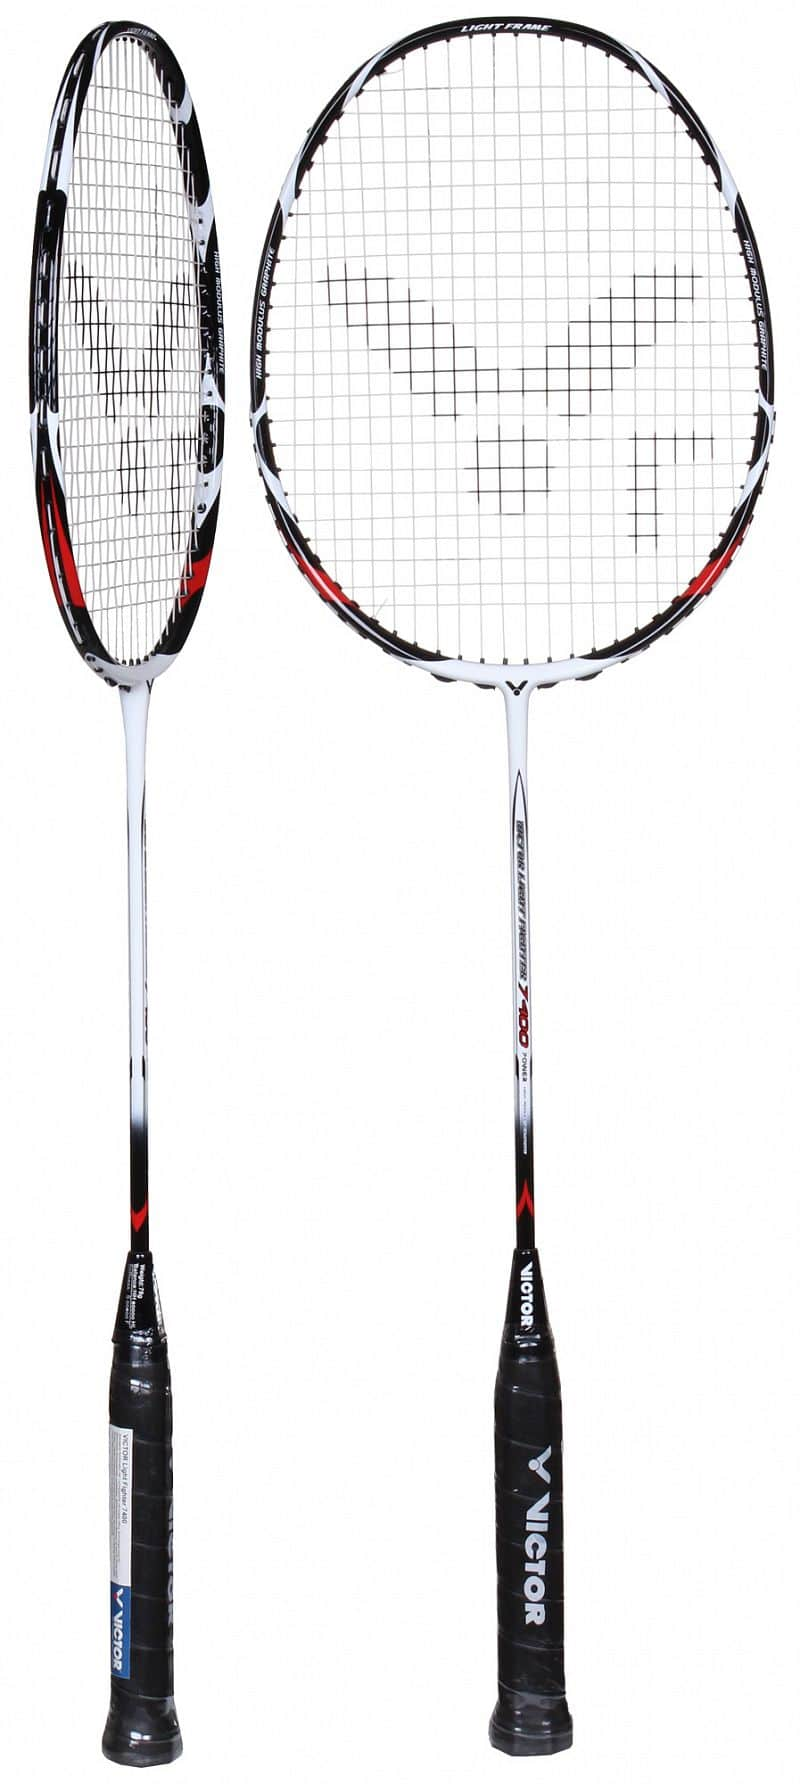 Light Fighter 7400 badmintonová raketa